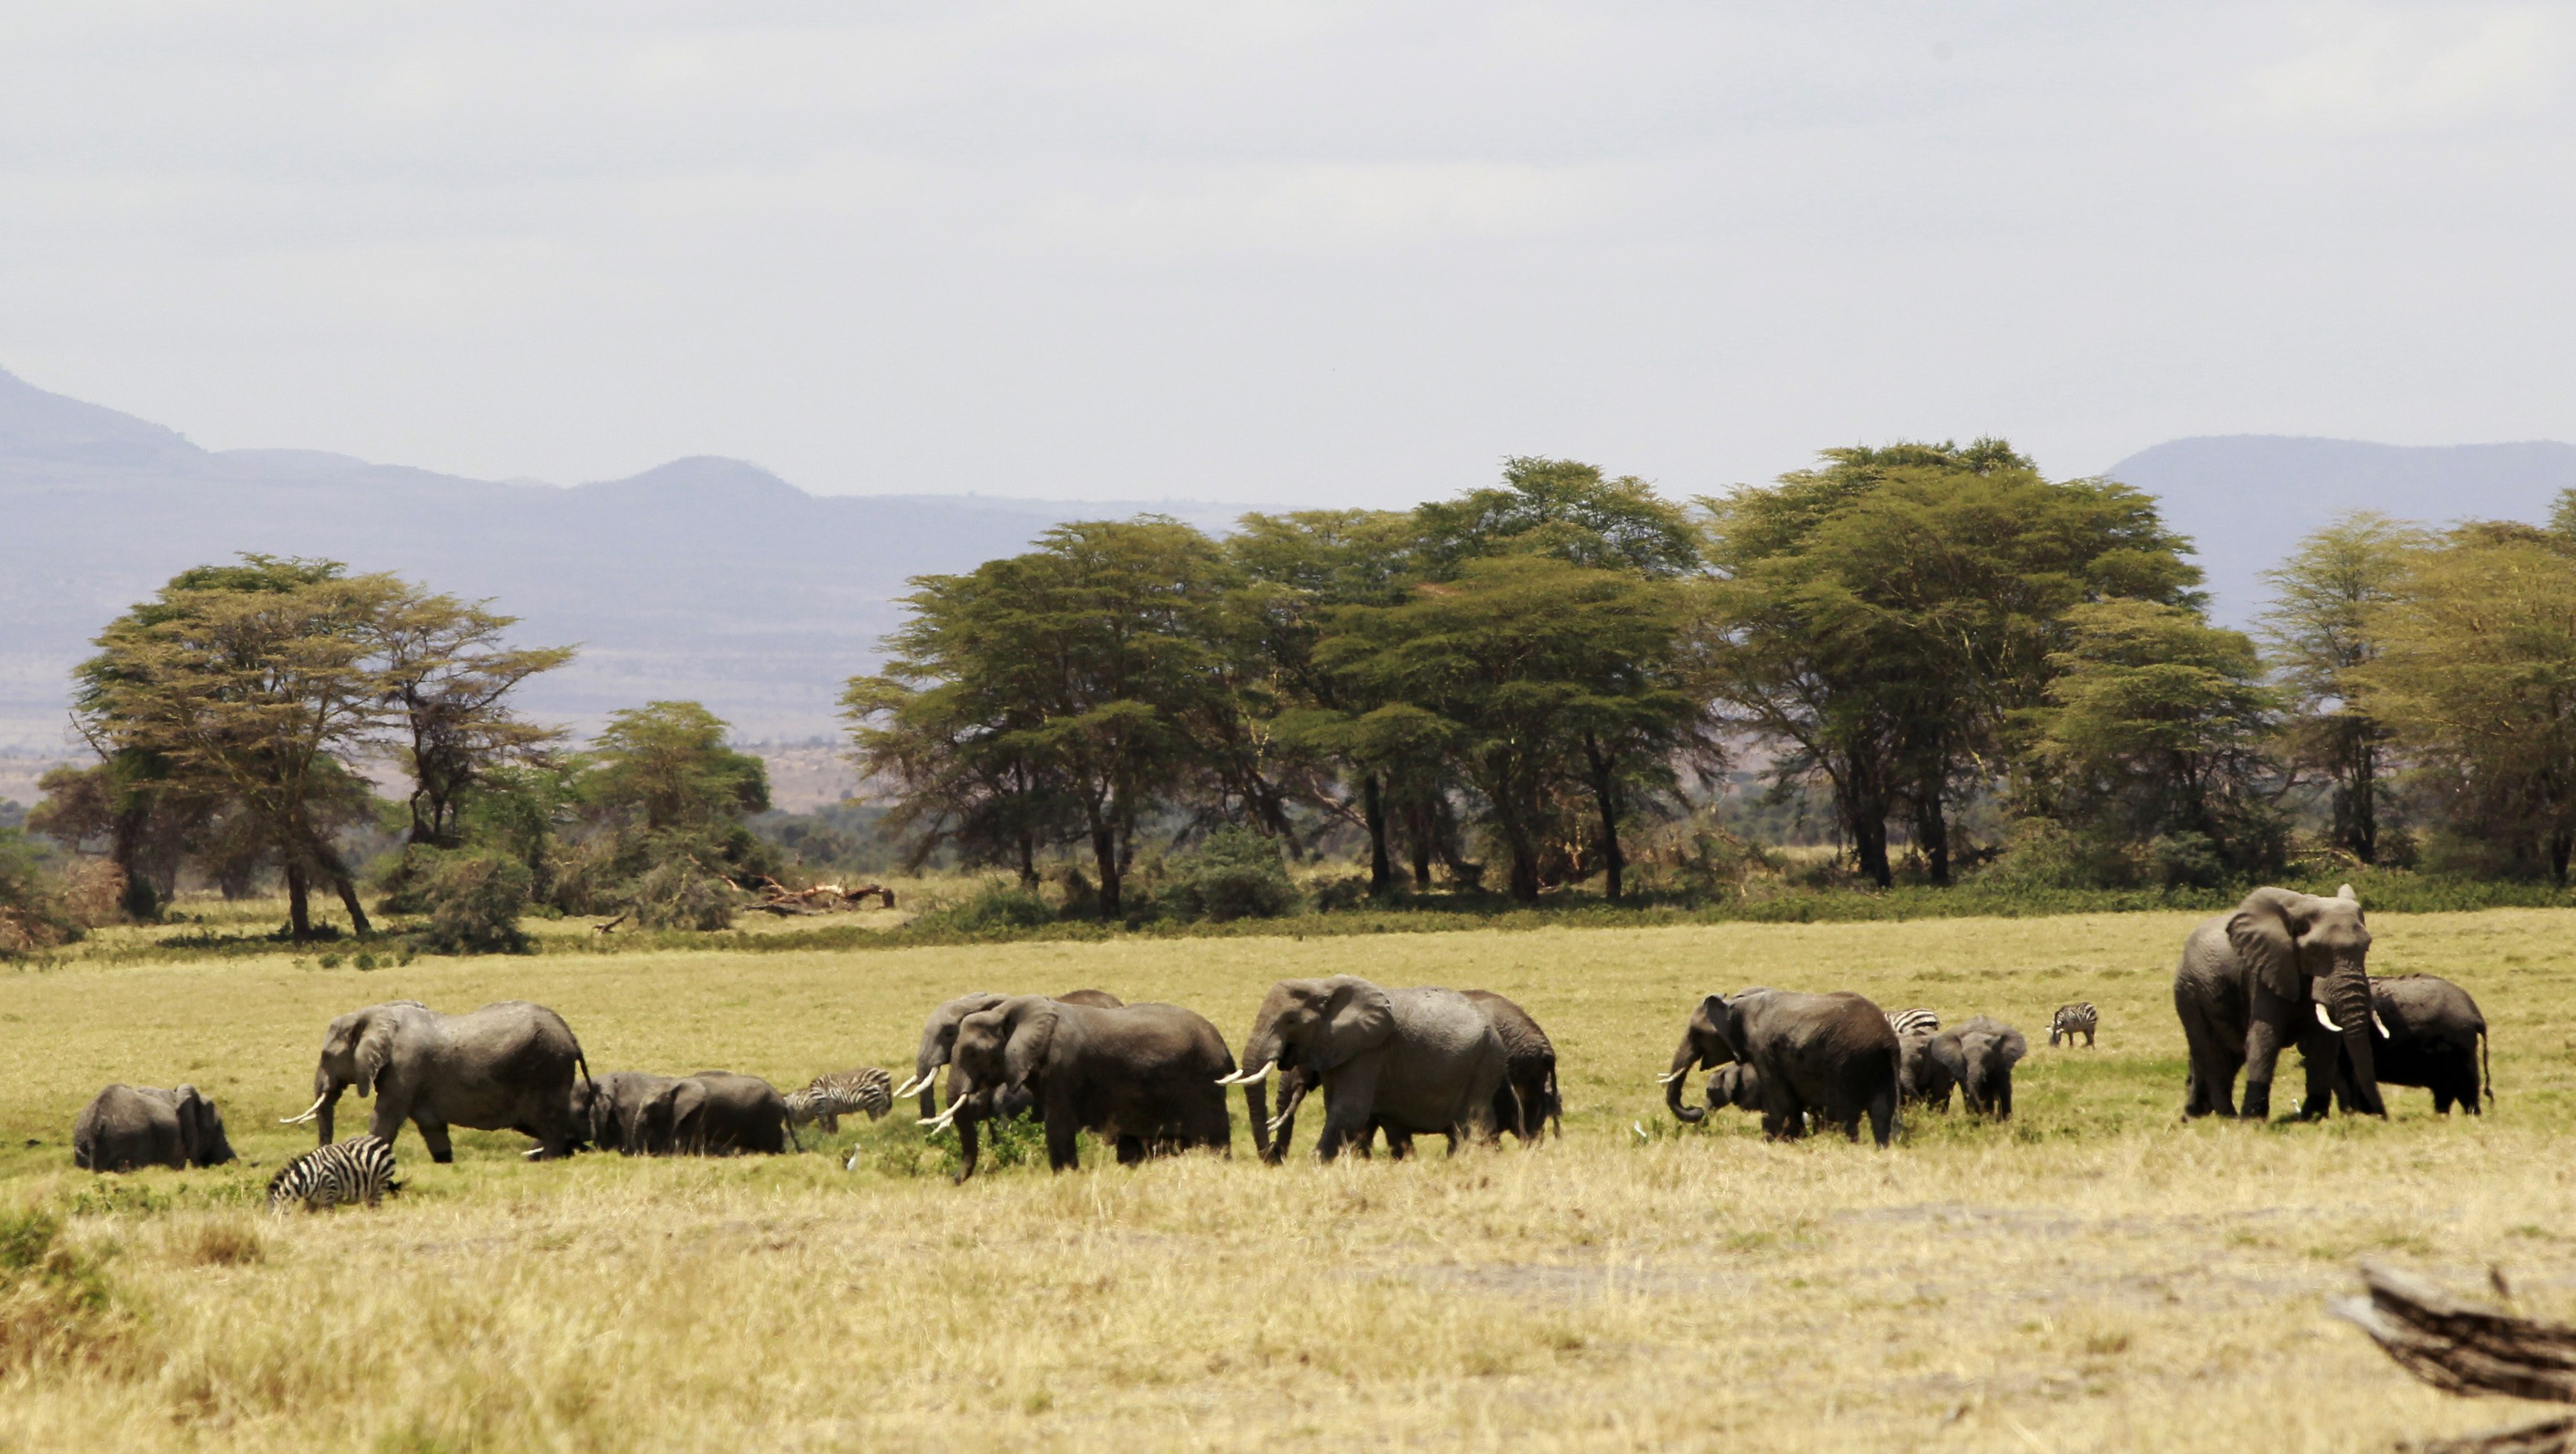 A family of elephants graze in the open land during a census at the Amboseli National Park, 290 km (188 miles) southeast of Kenya's capital Nairobi, October 9, 2013.